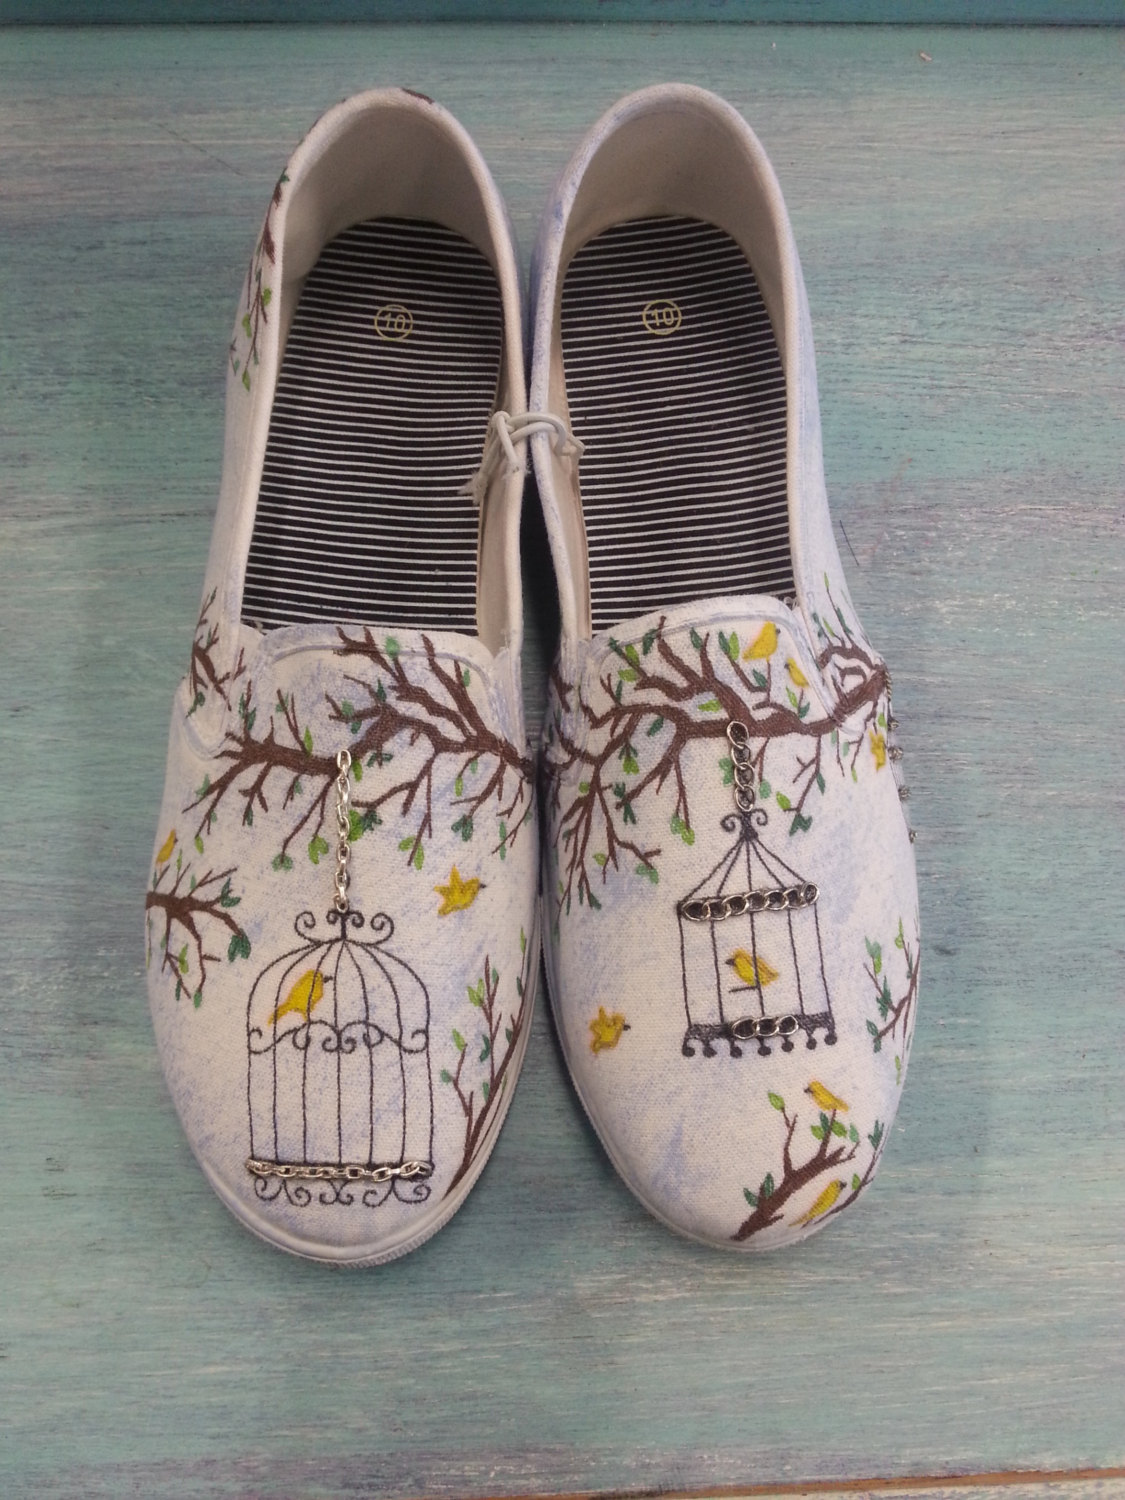 Drawn sneakers canvas shoe Canvas Hand Birdcage Vintage Womens